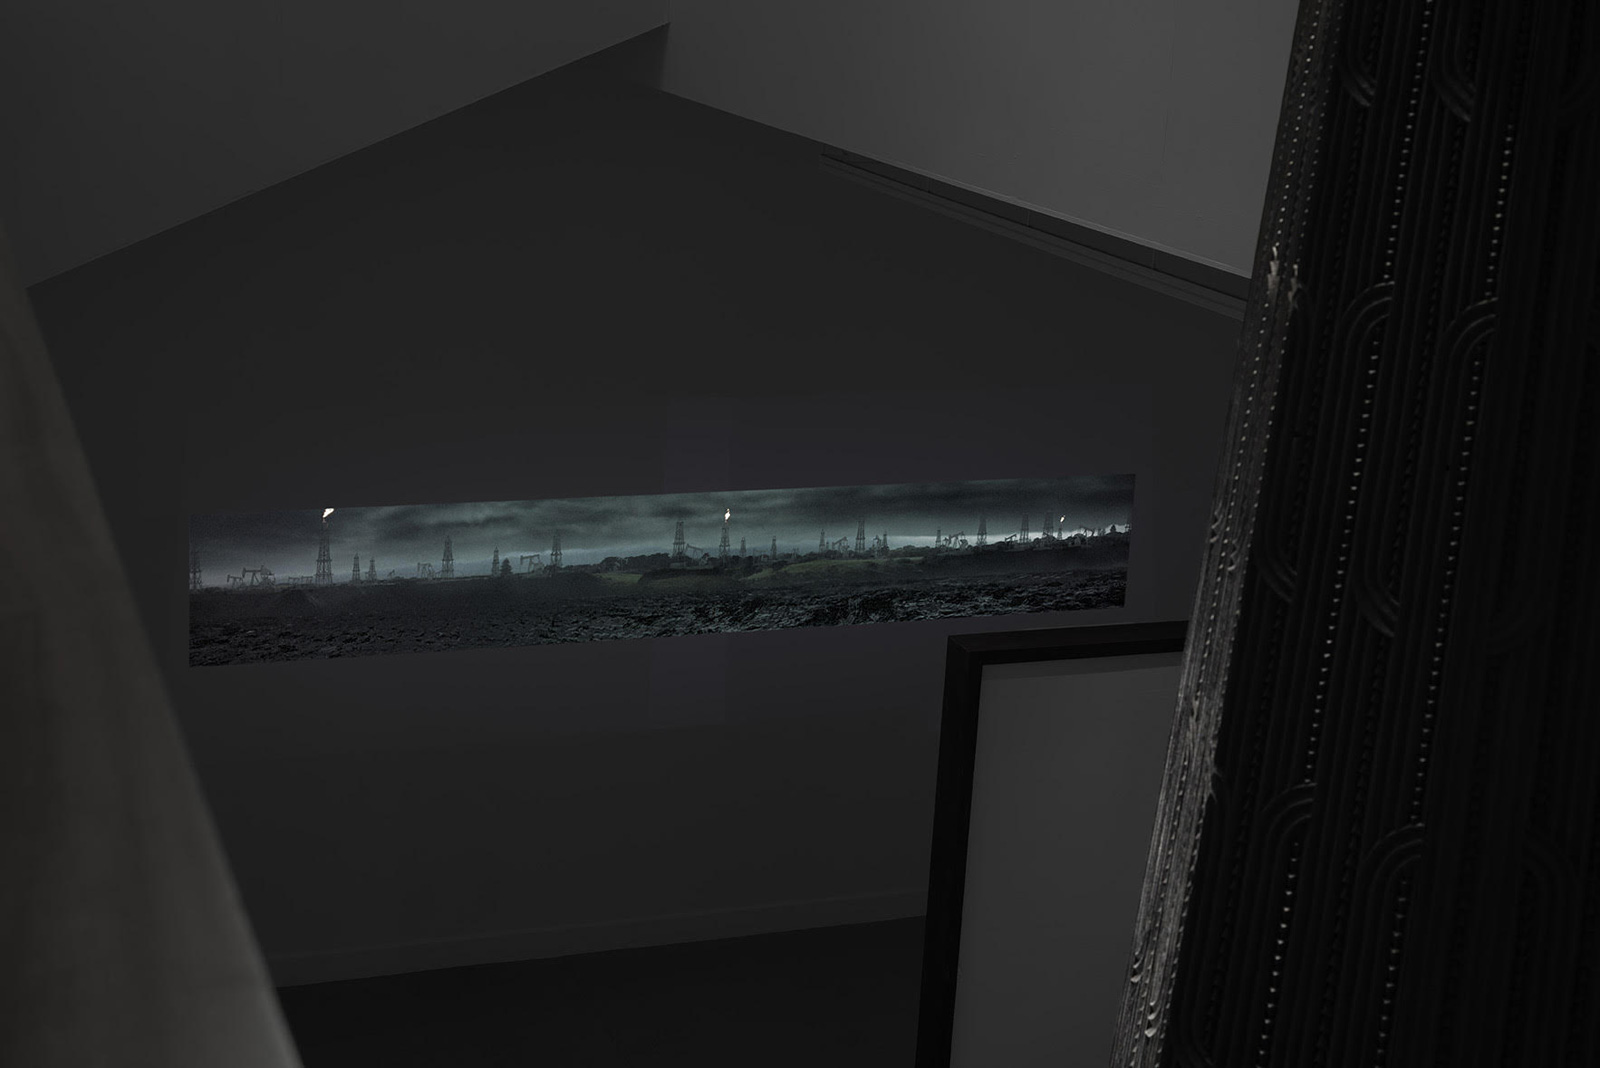 Video projection by New Zealand artist Brett Graham and Animation Research Ltd., at the Tai Moana Tai Tangata exhibition